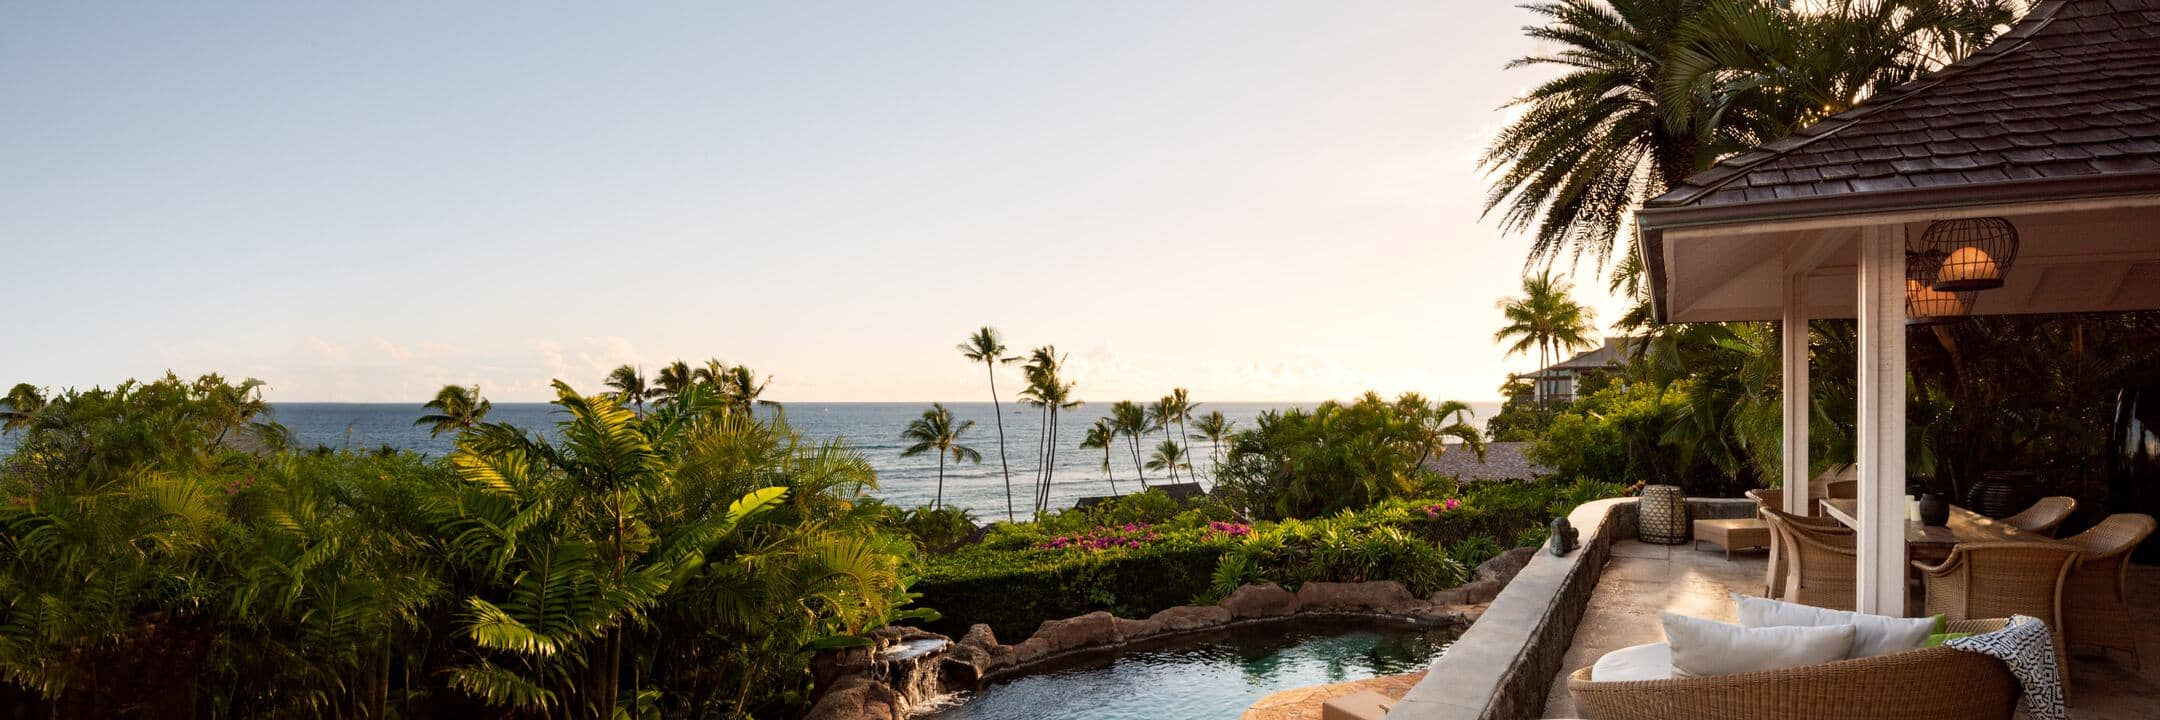 Luxury rentals in O'ahu